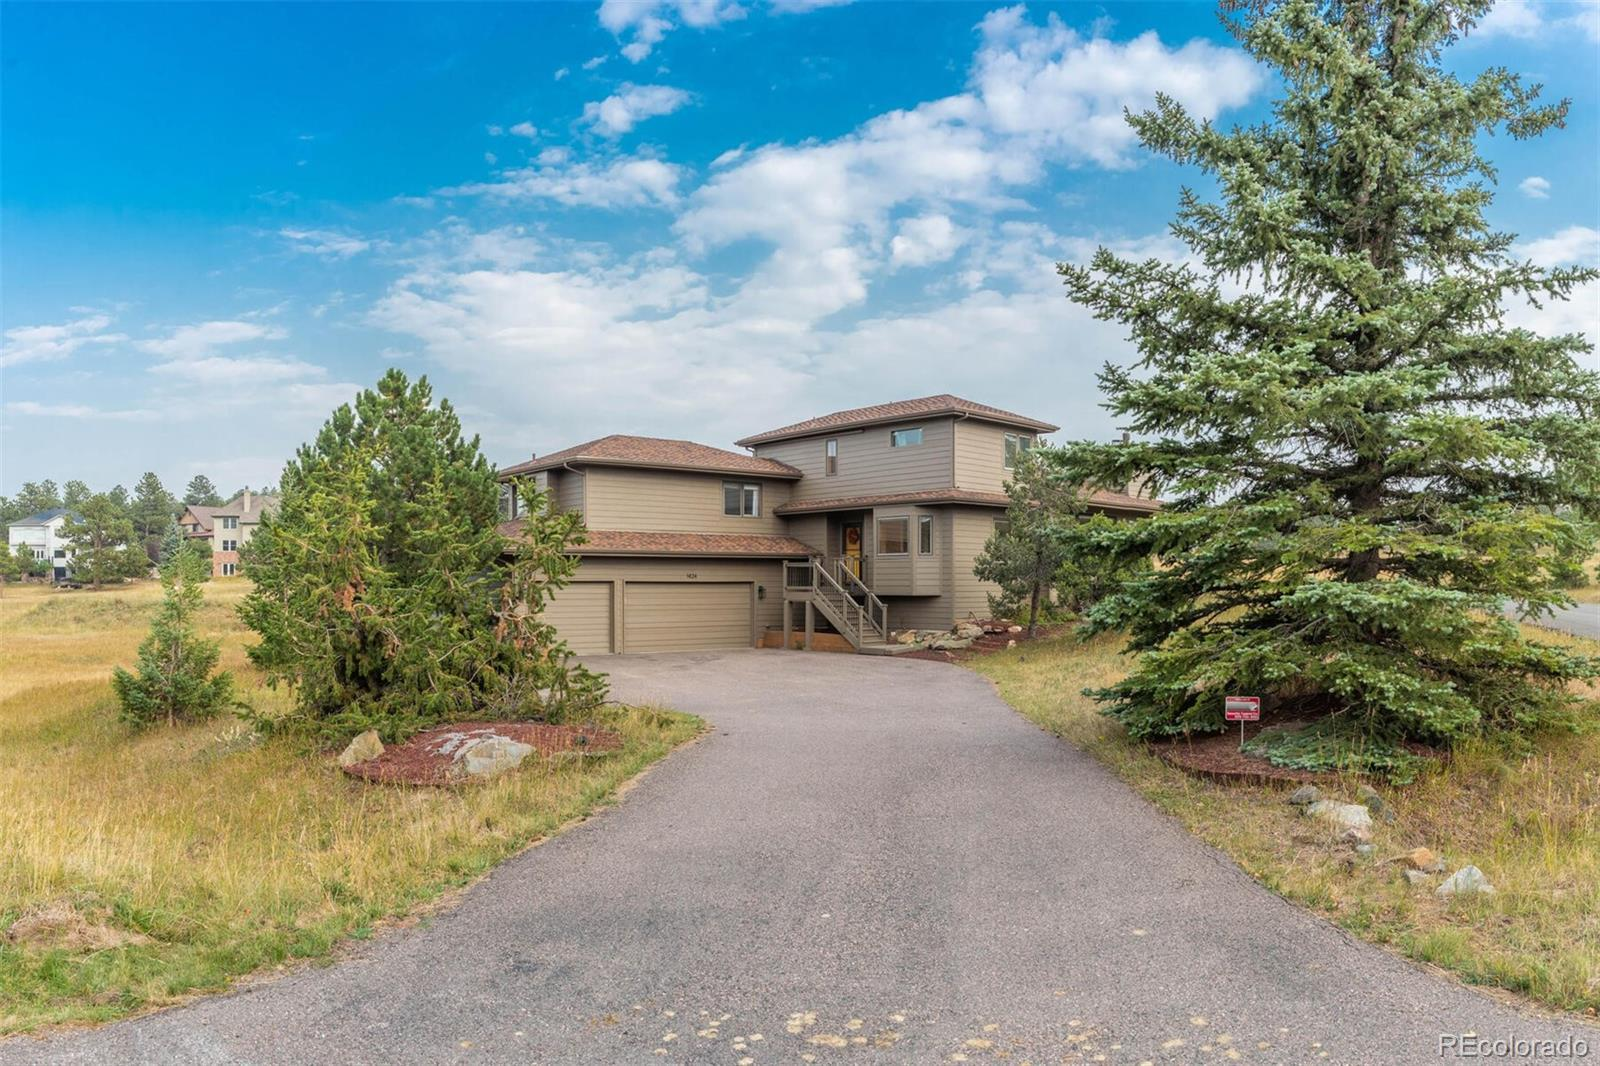 1424 Meadowrose Drive, Golden, CO 80401 - #: 5492806